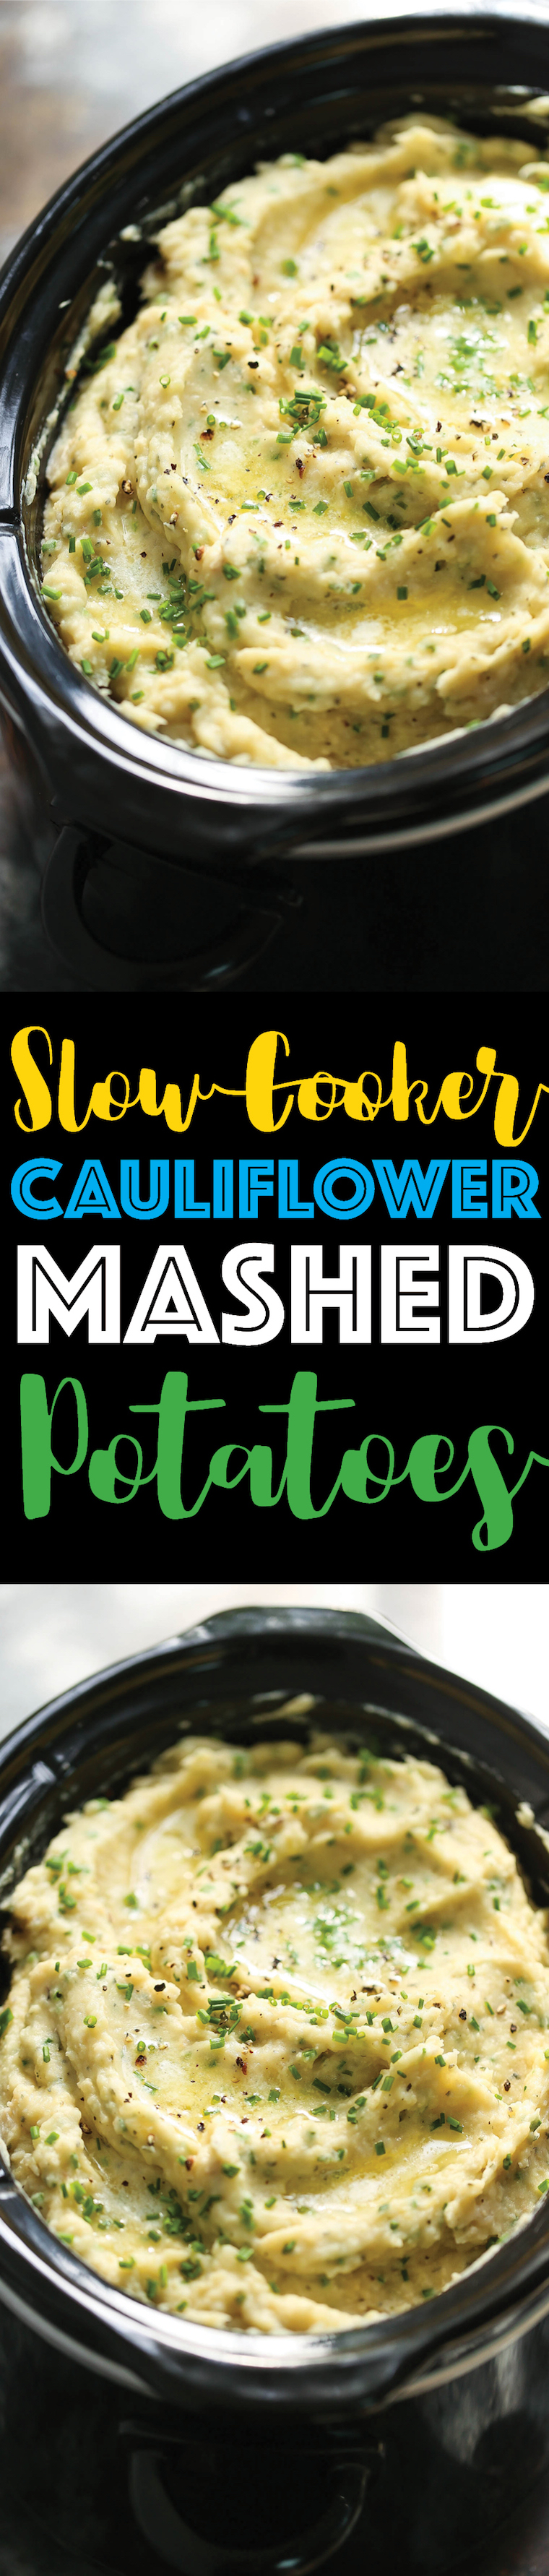 Slow Cooker Cauliflower Mashed Potatoes -BEST EVER mashed potatoes made right in your crockpot! Save on oven space! You won't even taste the cauliflower!